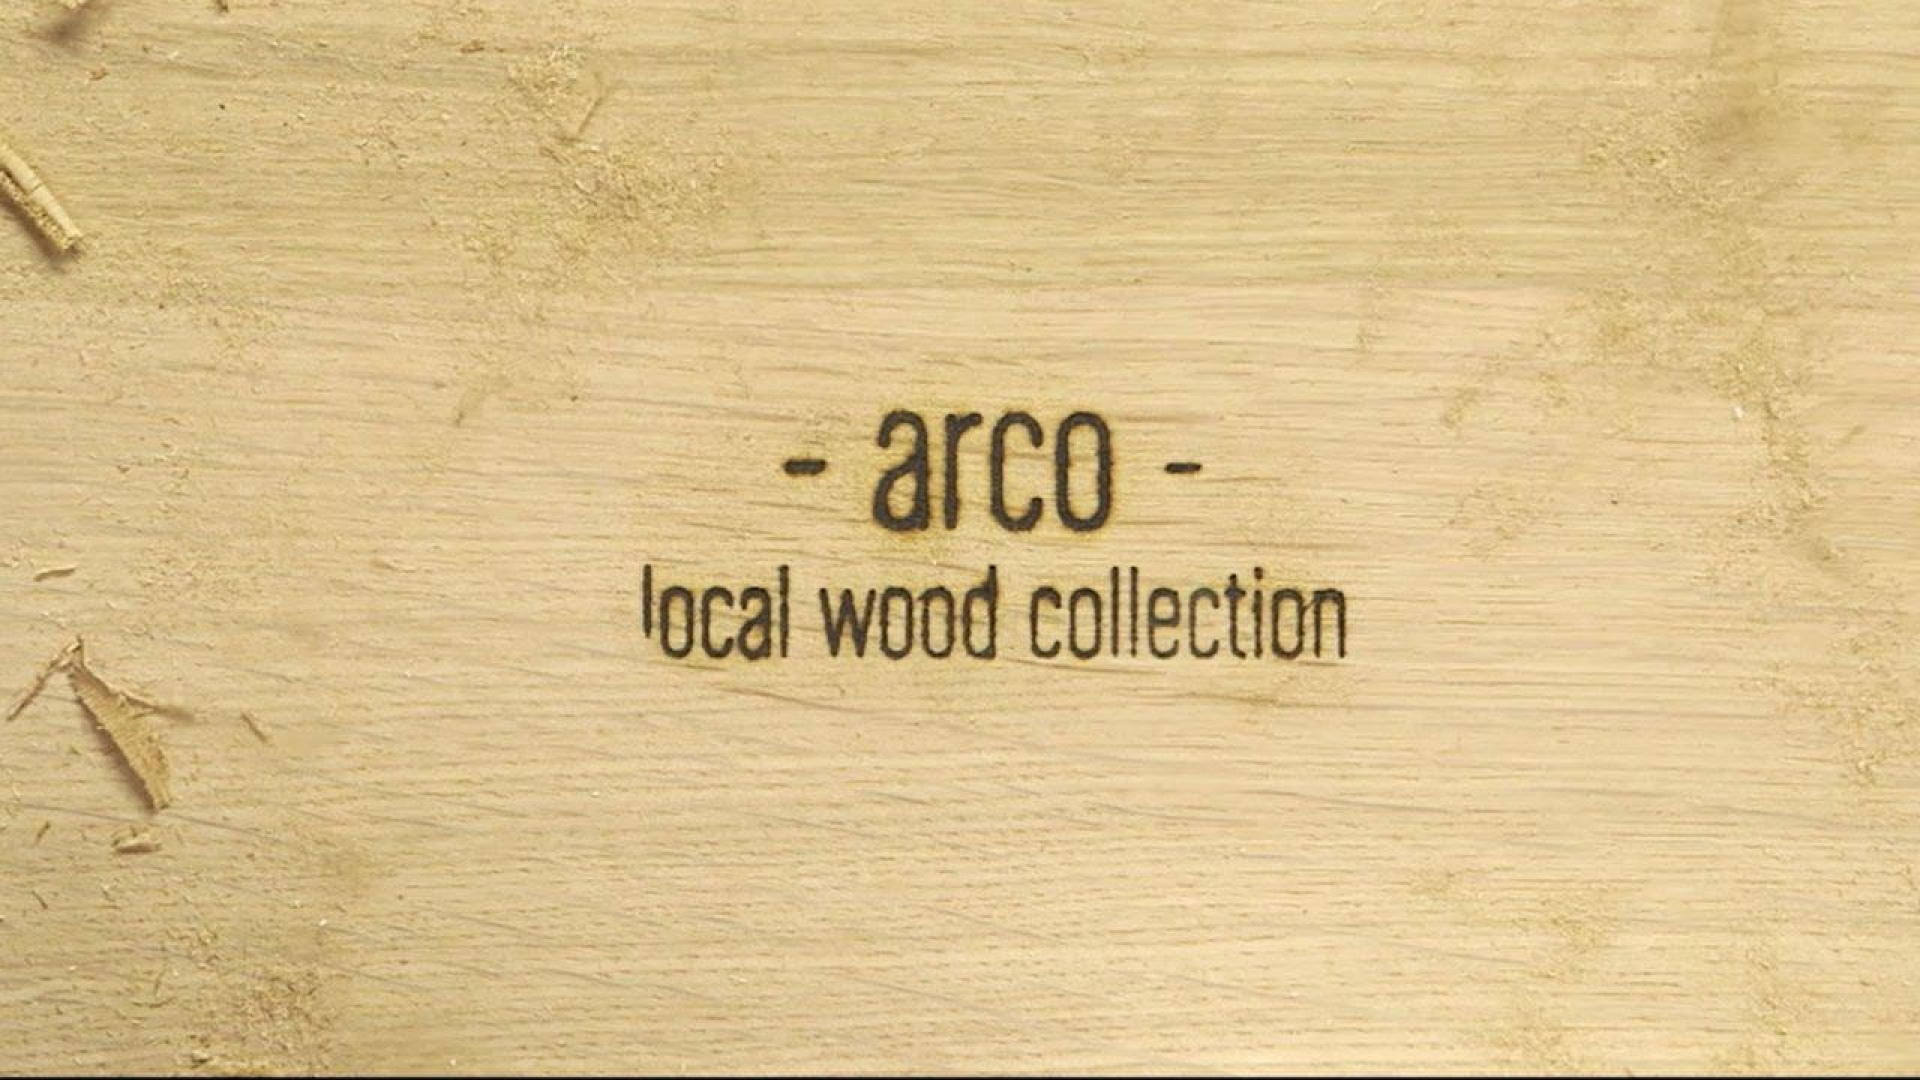 Vanderlindeinterieur_Arco local wood collection